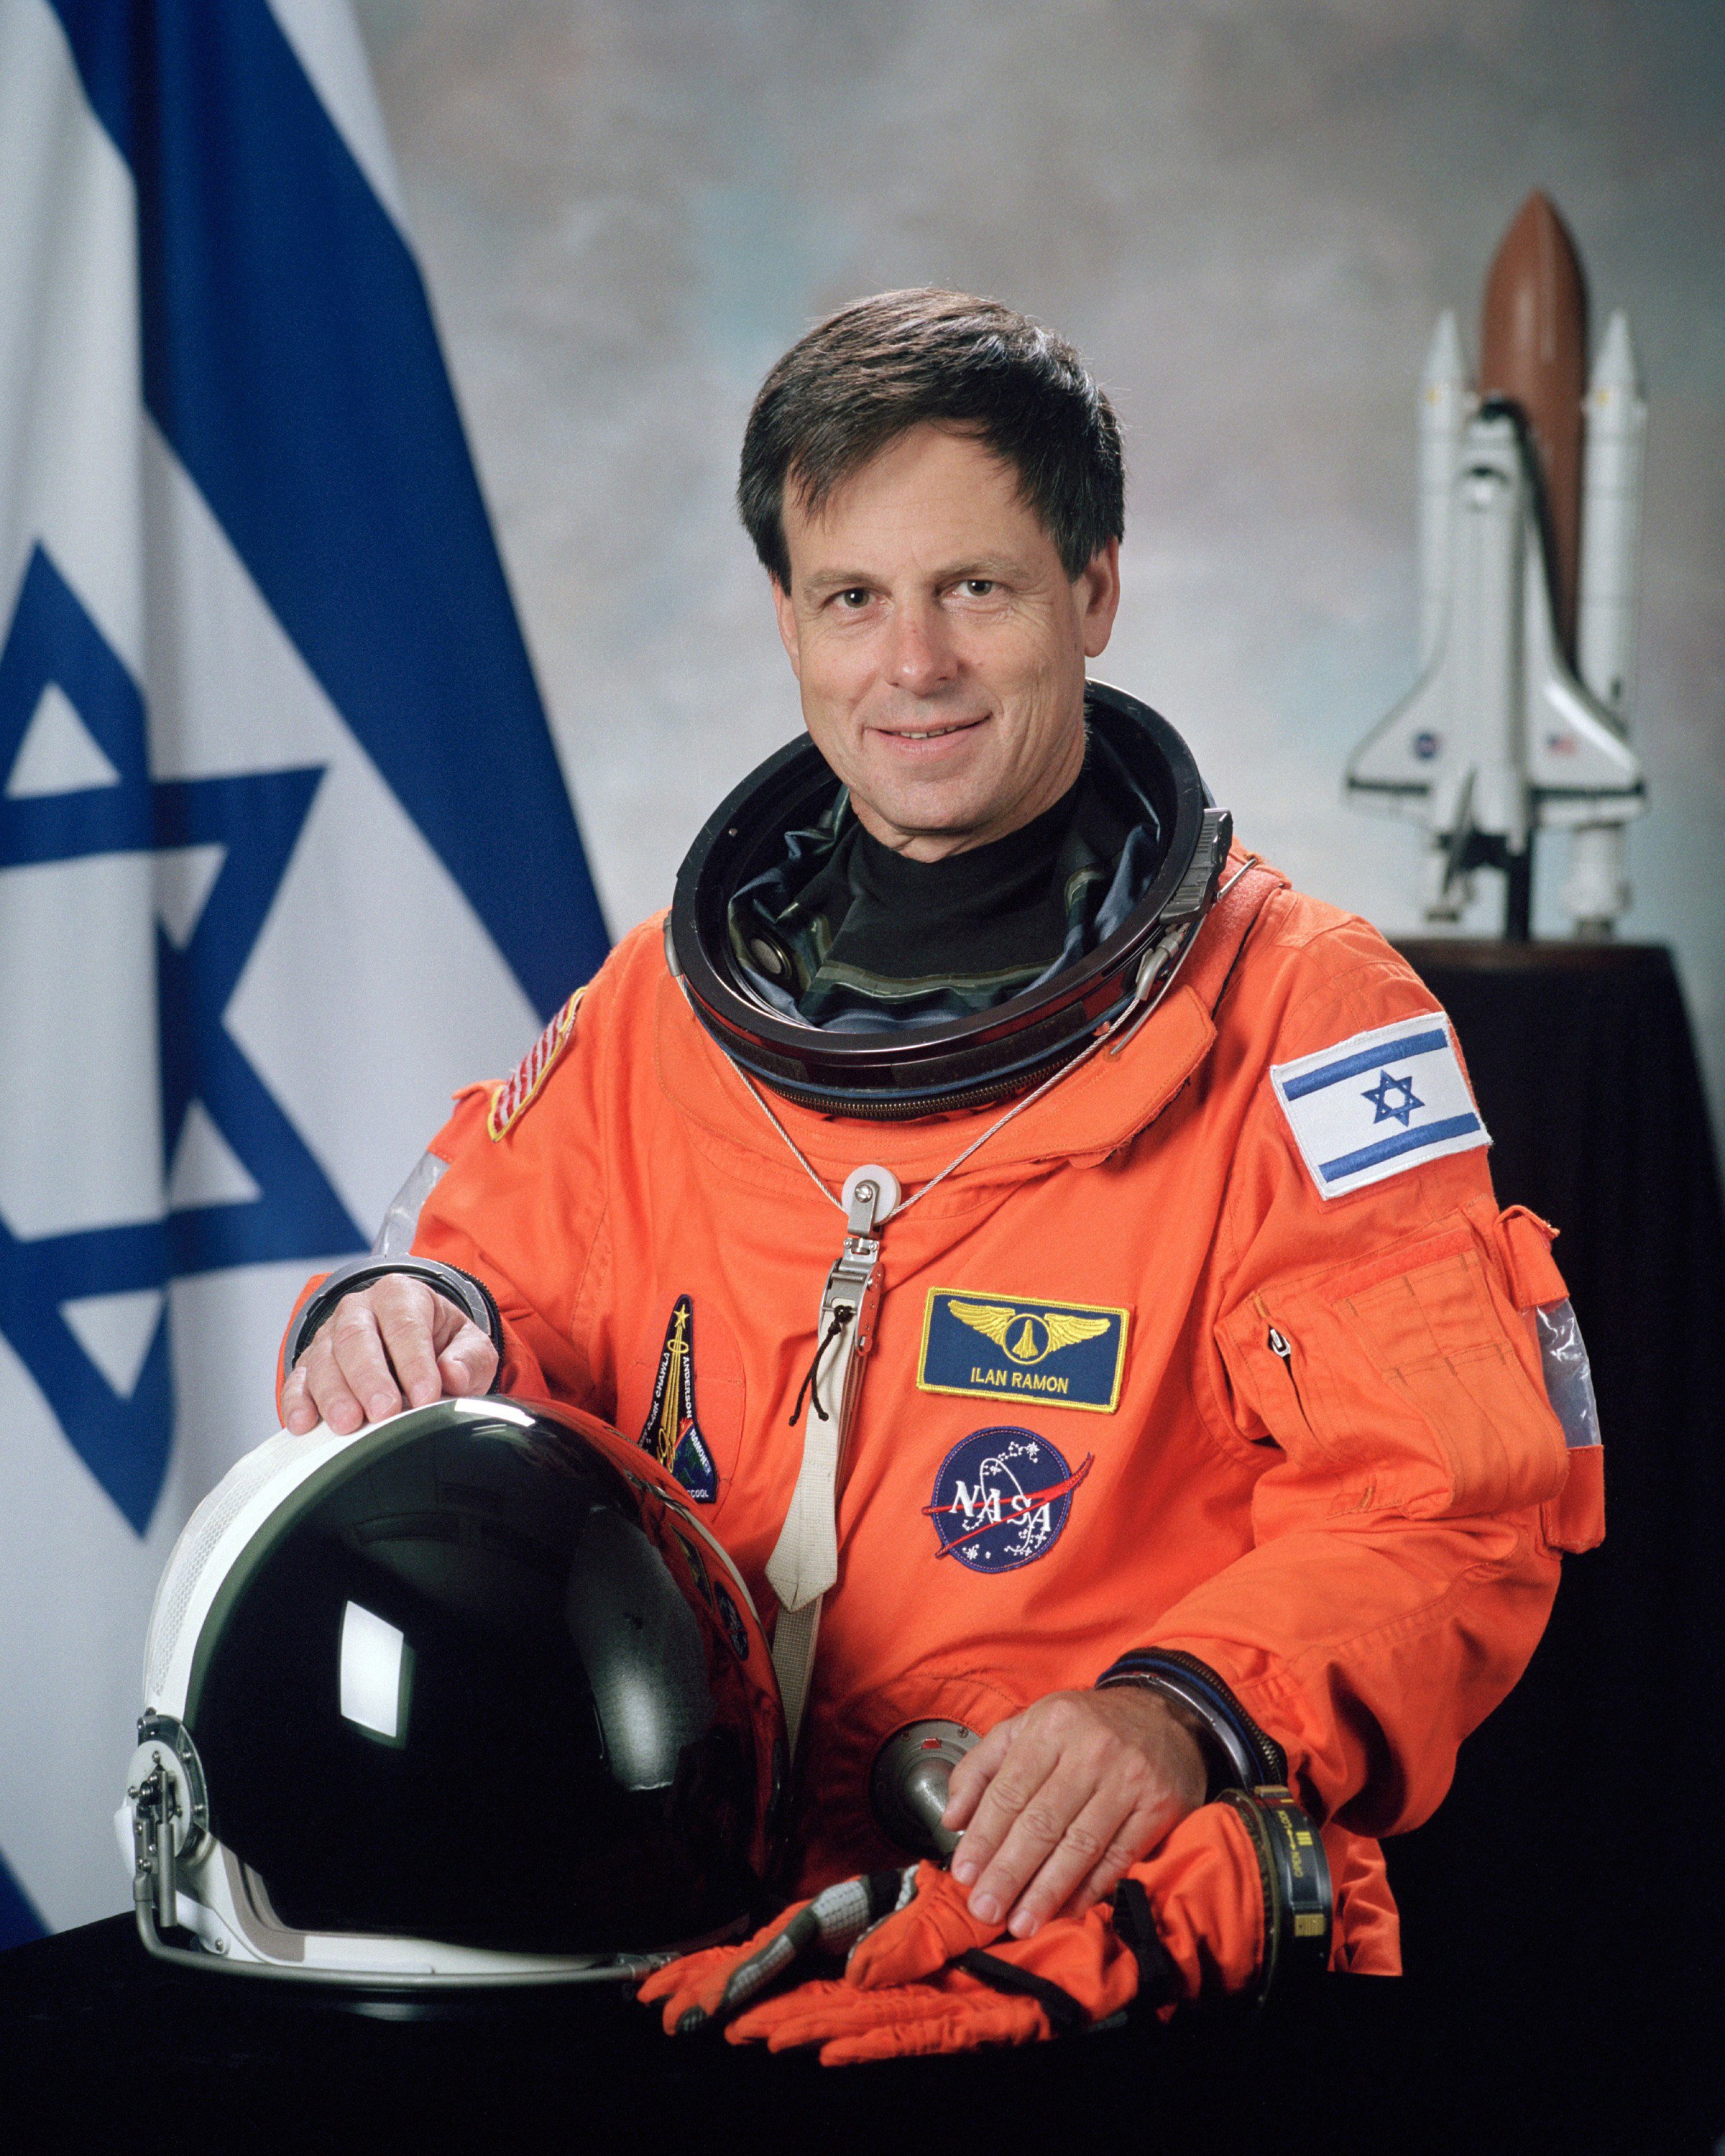 ilan_ramon_nasa_photo_portrait_in_orange_suit.jpg